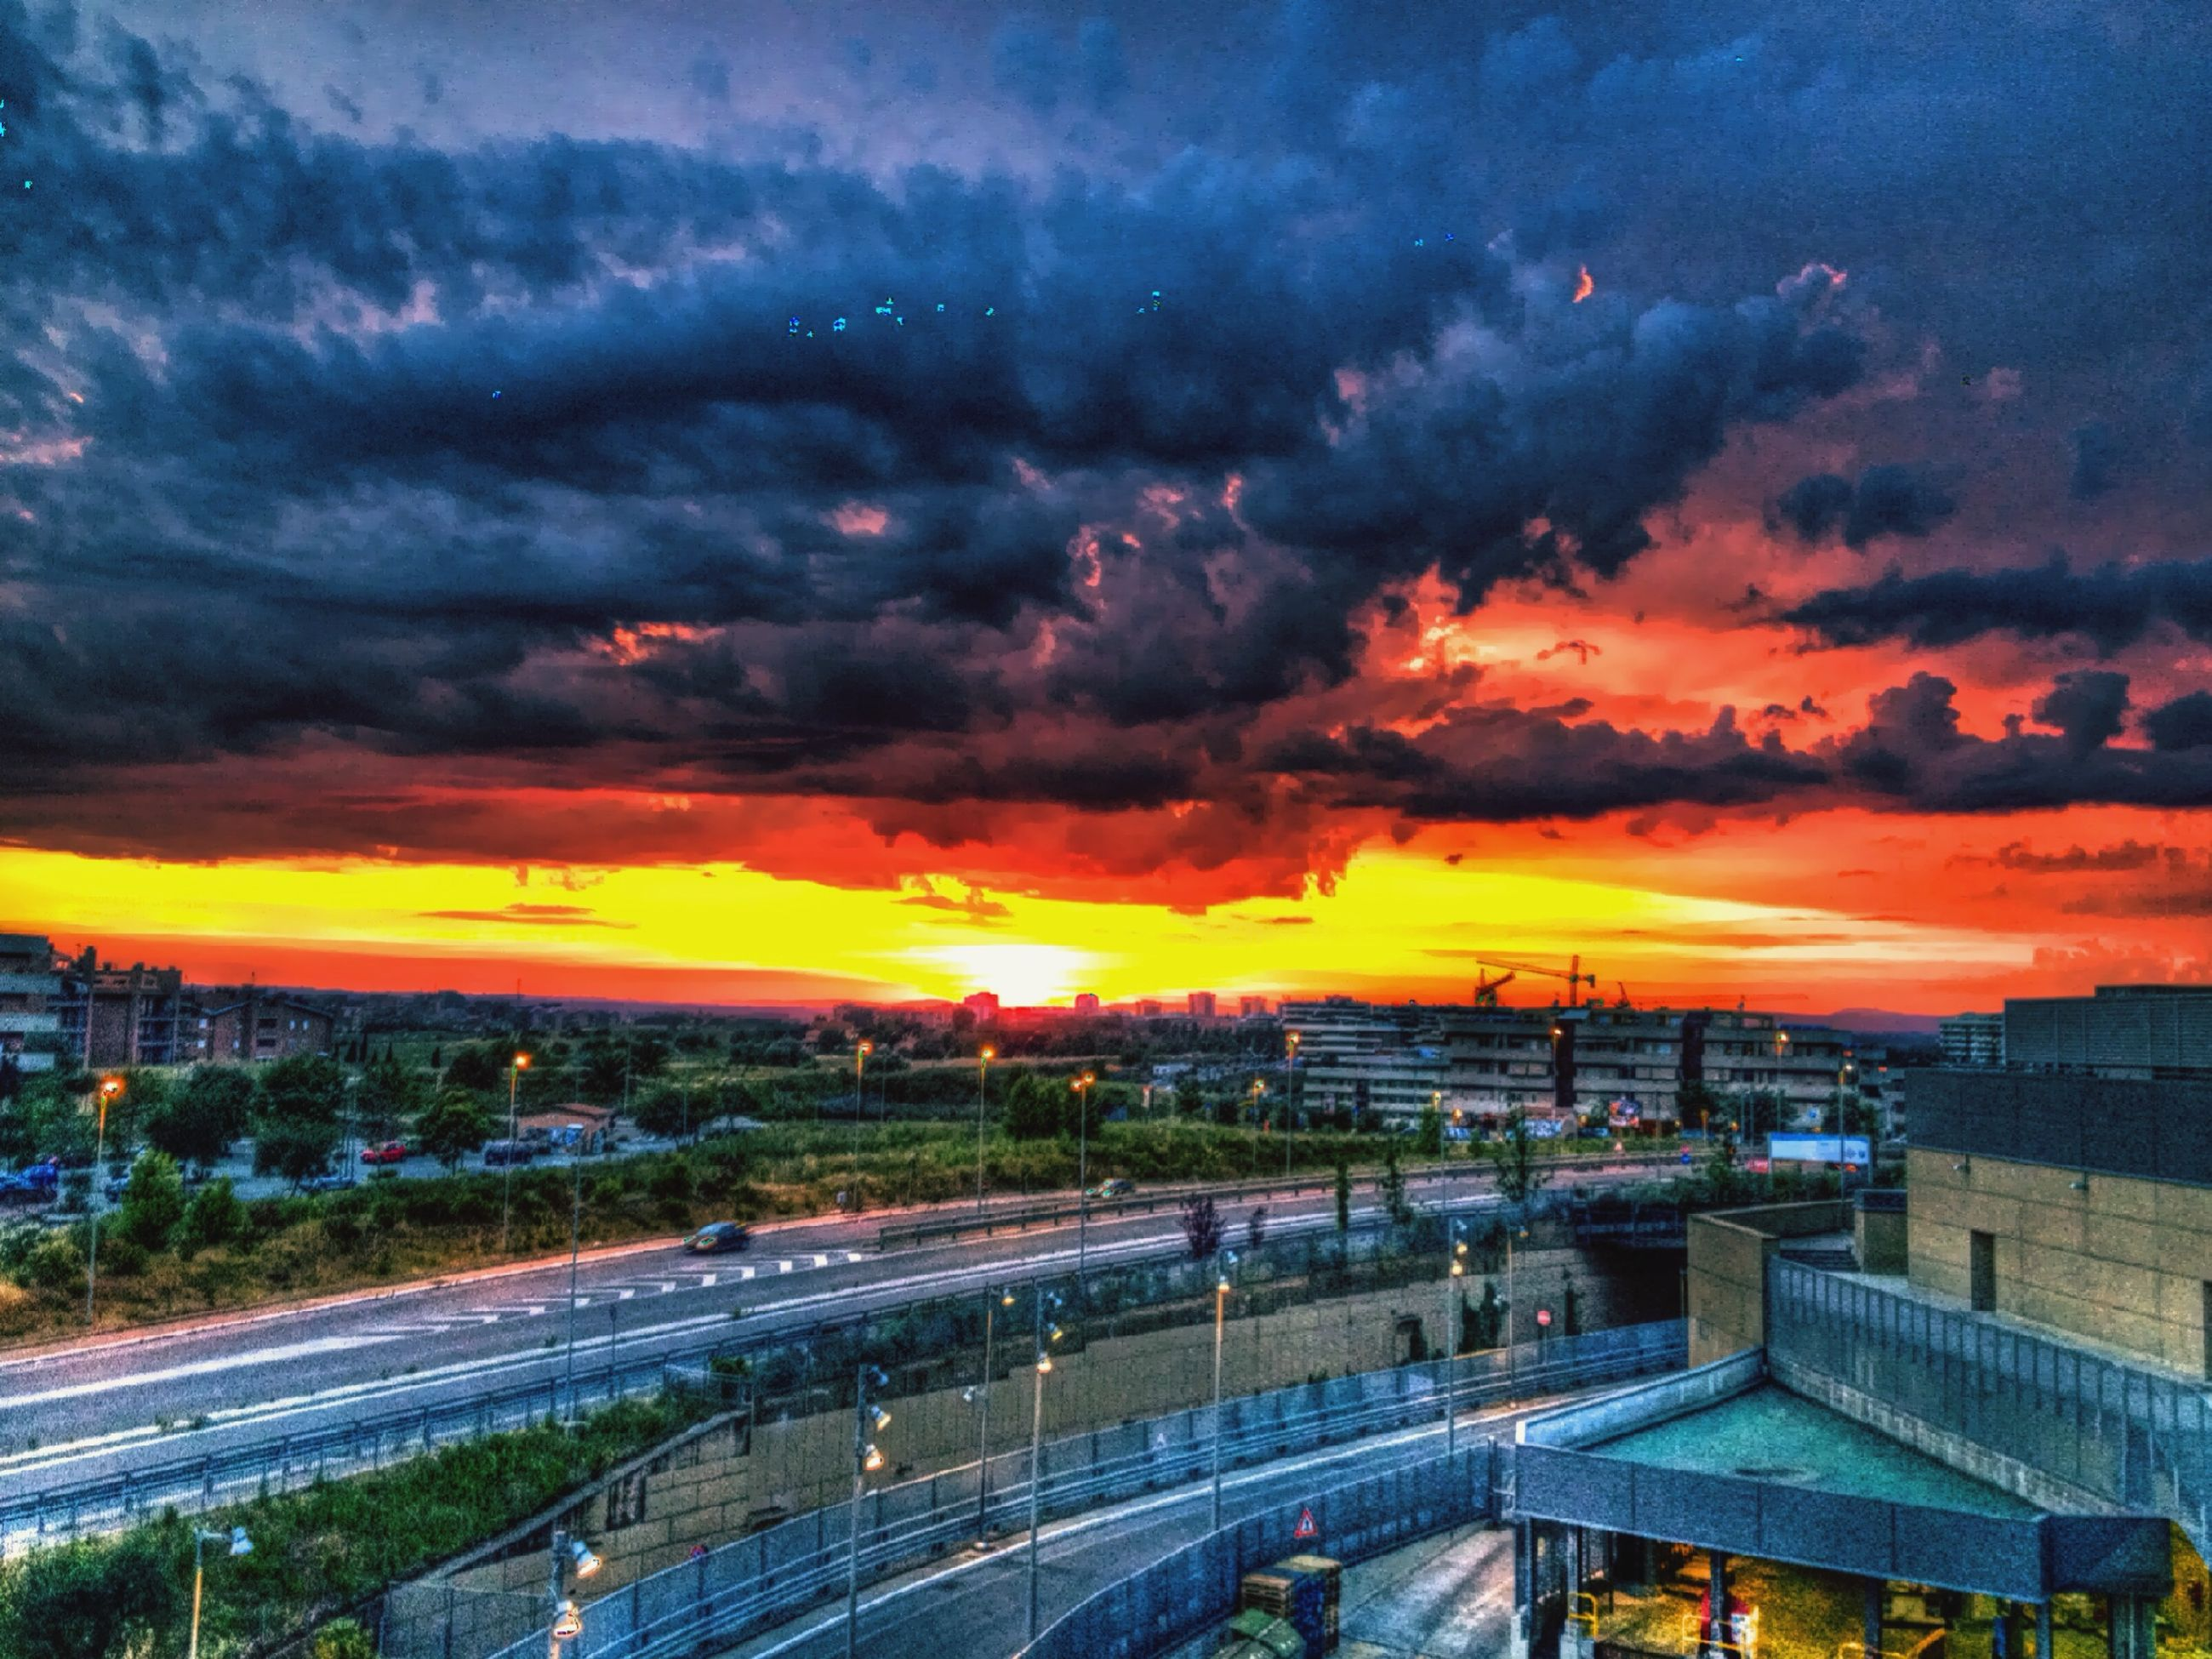 sunset, cloud - sky, sky, orange color, dramatic sky, cloudy, cloud, beauty in nature, scenics, high angle view, nature, landscape, built structure, architecture, moody sky, atmospheric mood, building exterior, weather, outdoors, road